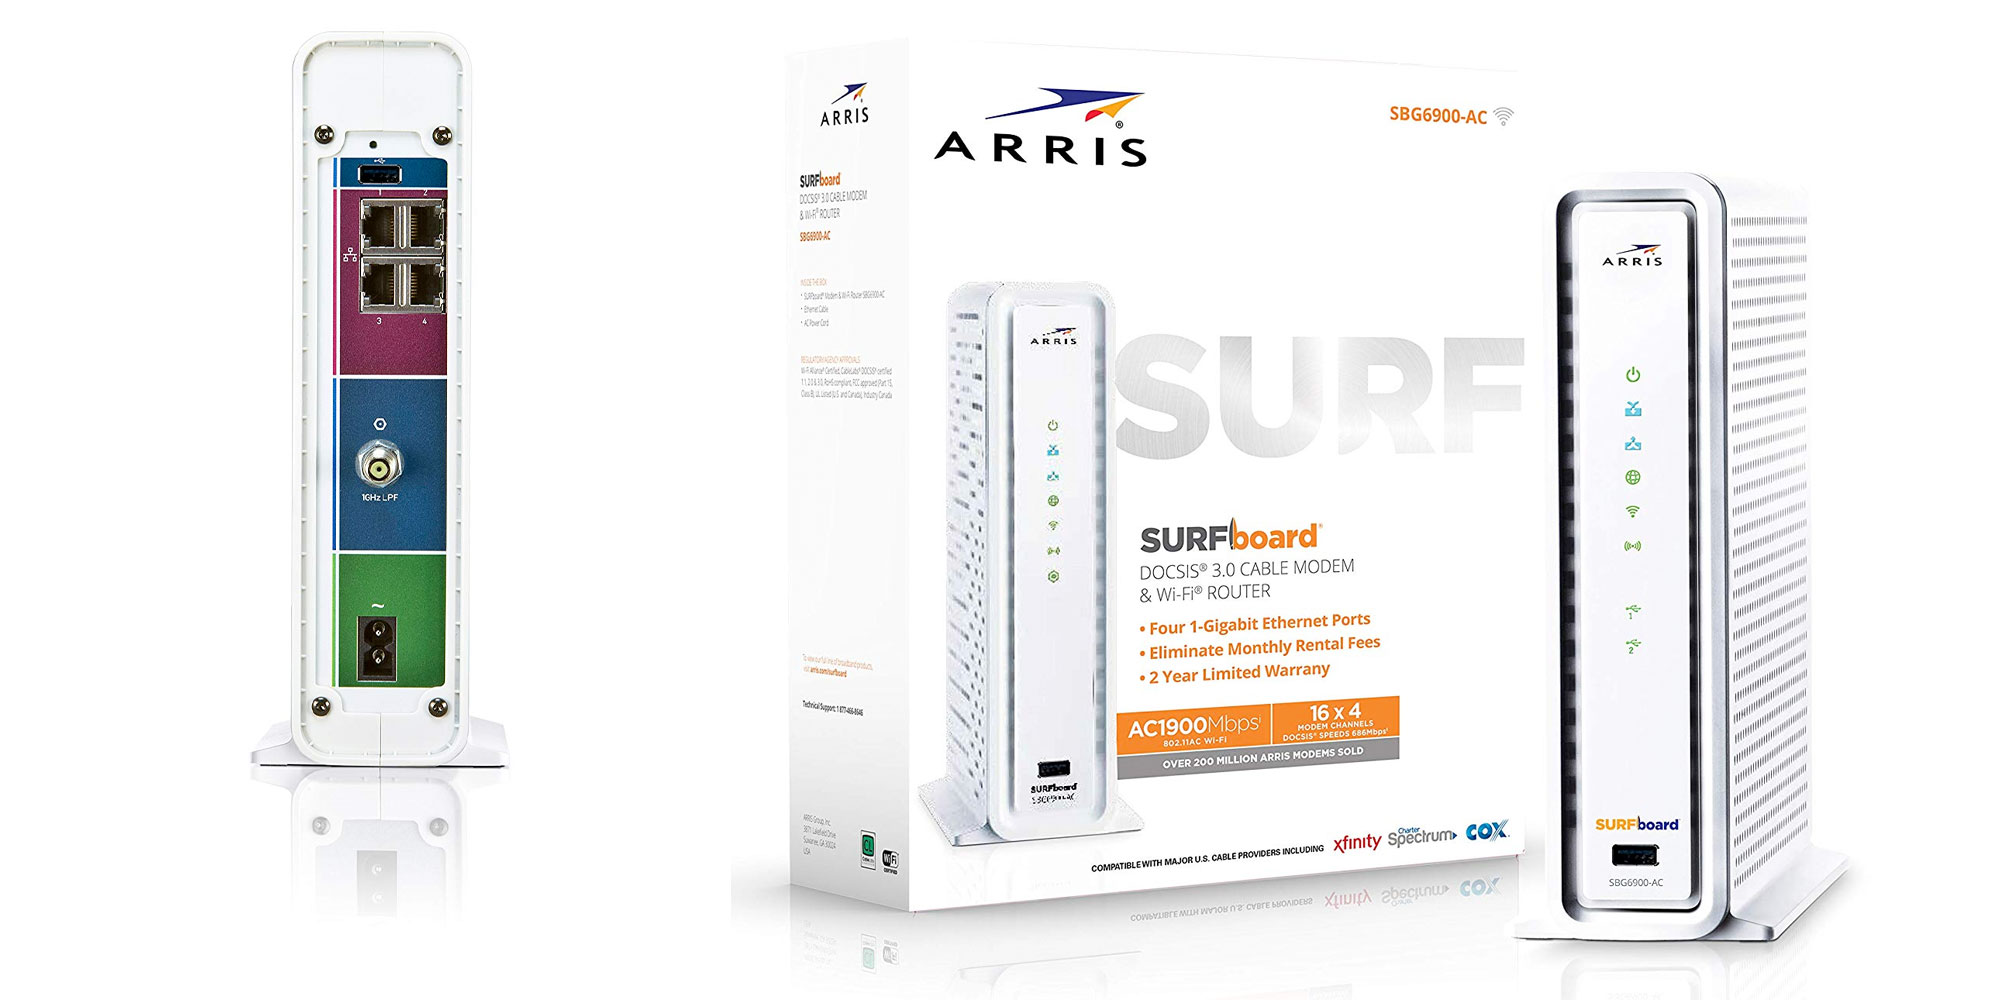 Take 25% off this ARRIS DOCSIS 3.0 modem + 802.11ac router: $121 (up to $120/yr in savings)